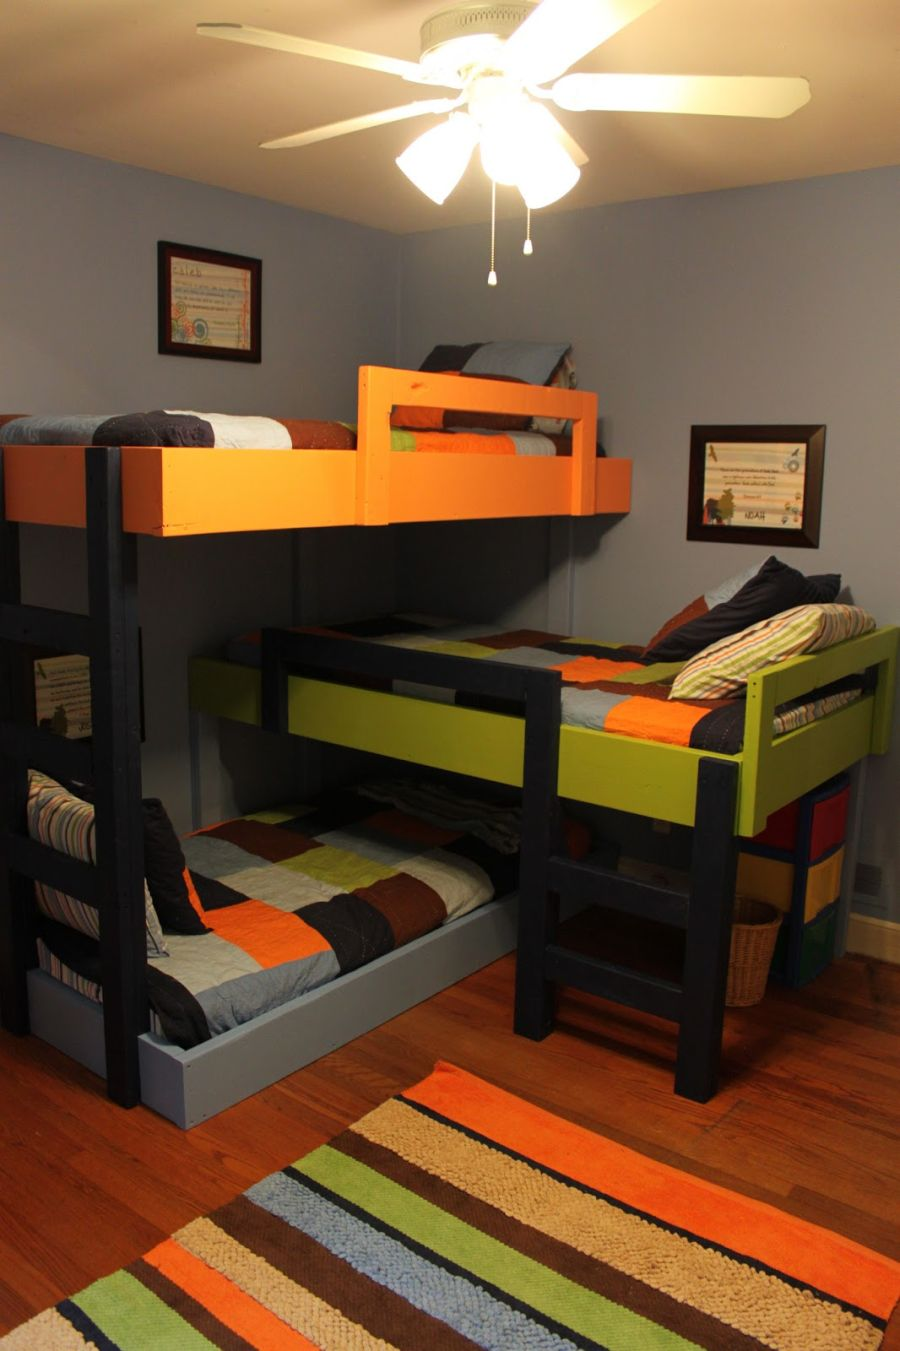 Design Bunk Bedroom Ideas saving space and staying stylish with triple bunk beds home decorating trends homedit